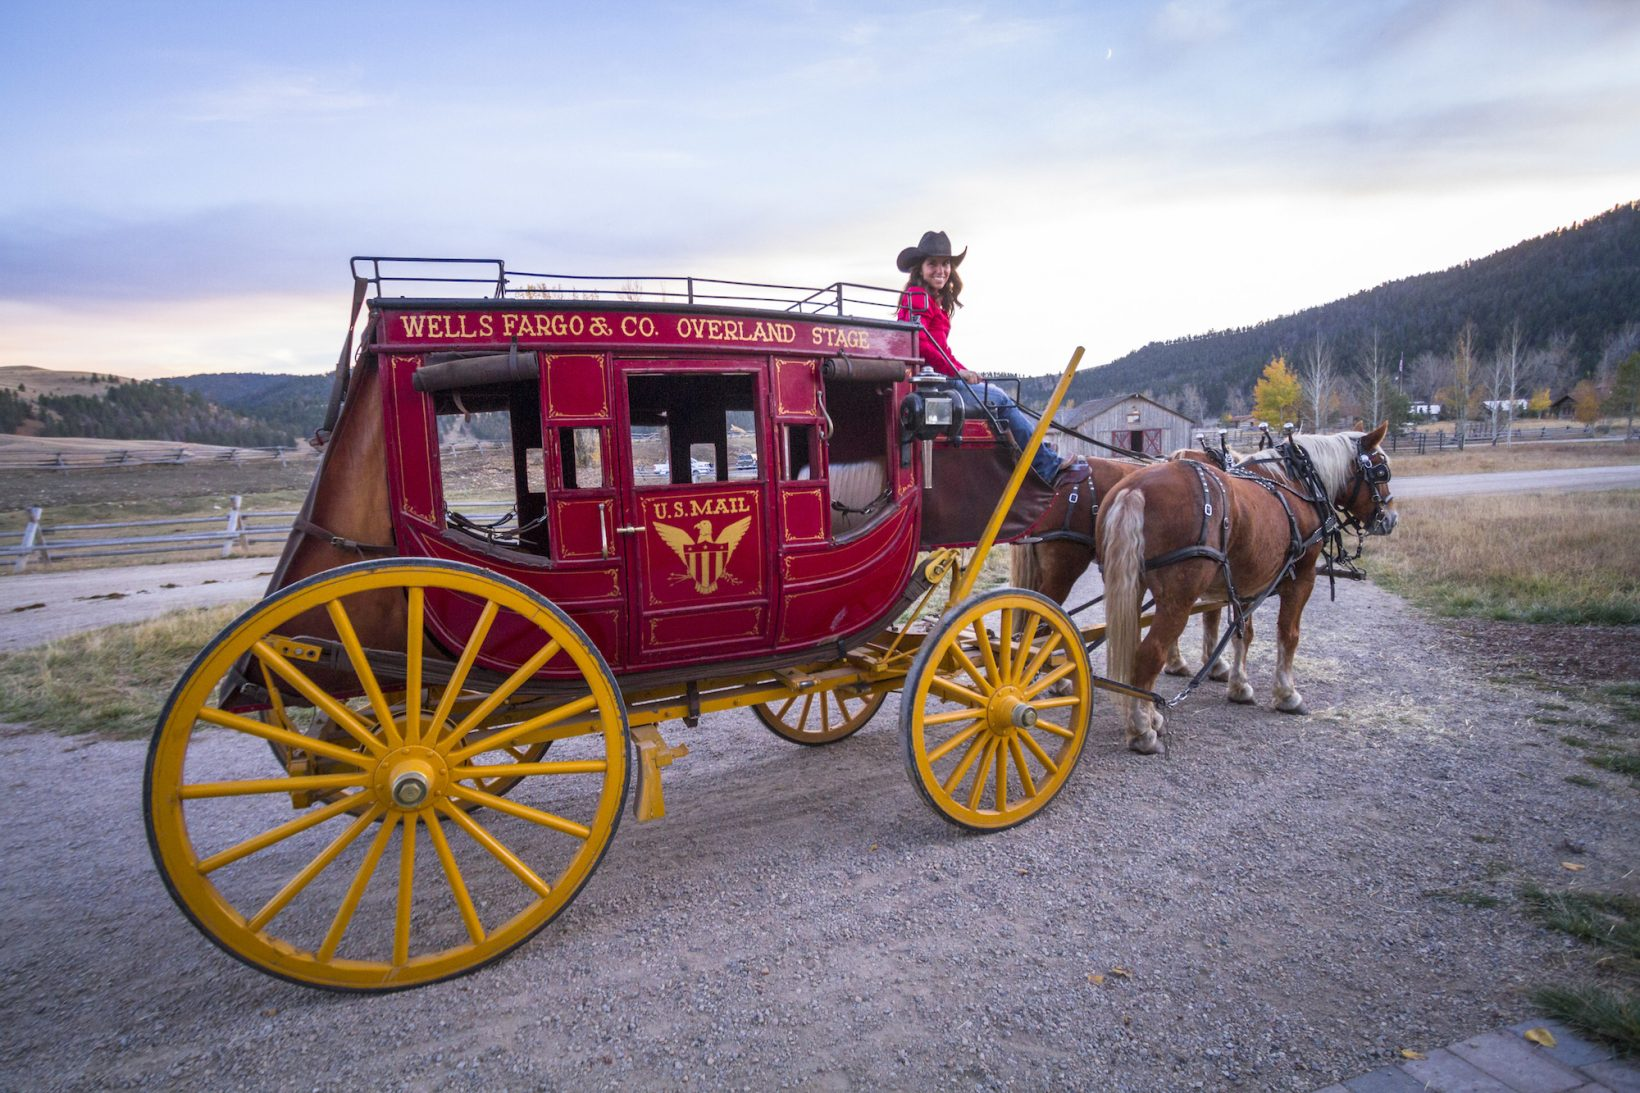 A Ranch wrangler drives a historic Wells Fargo stagecoach during Thanksgiving travel dates